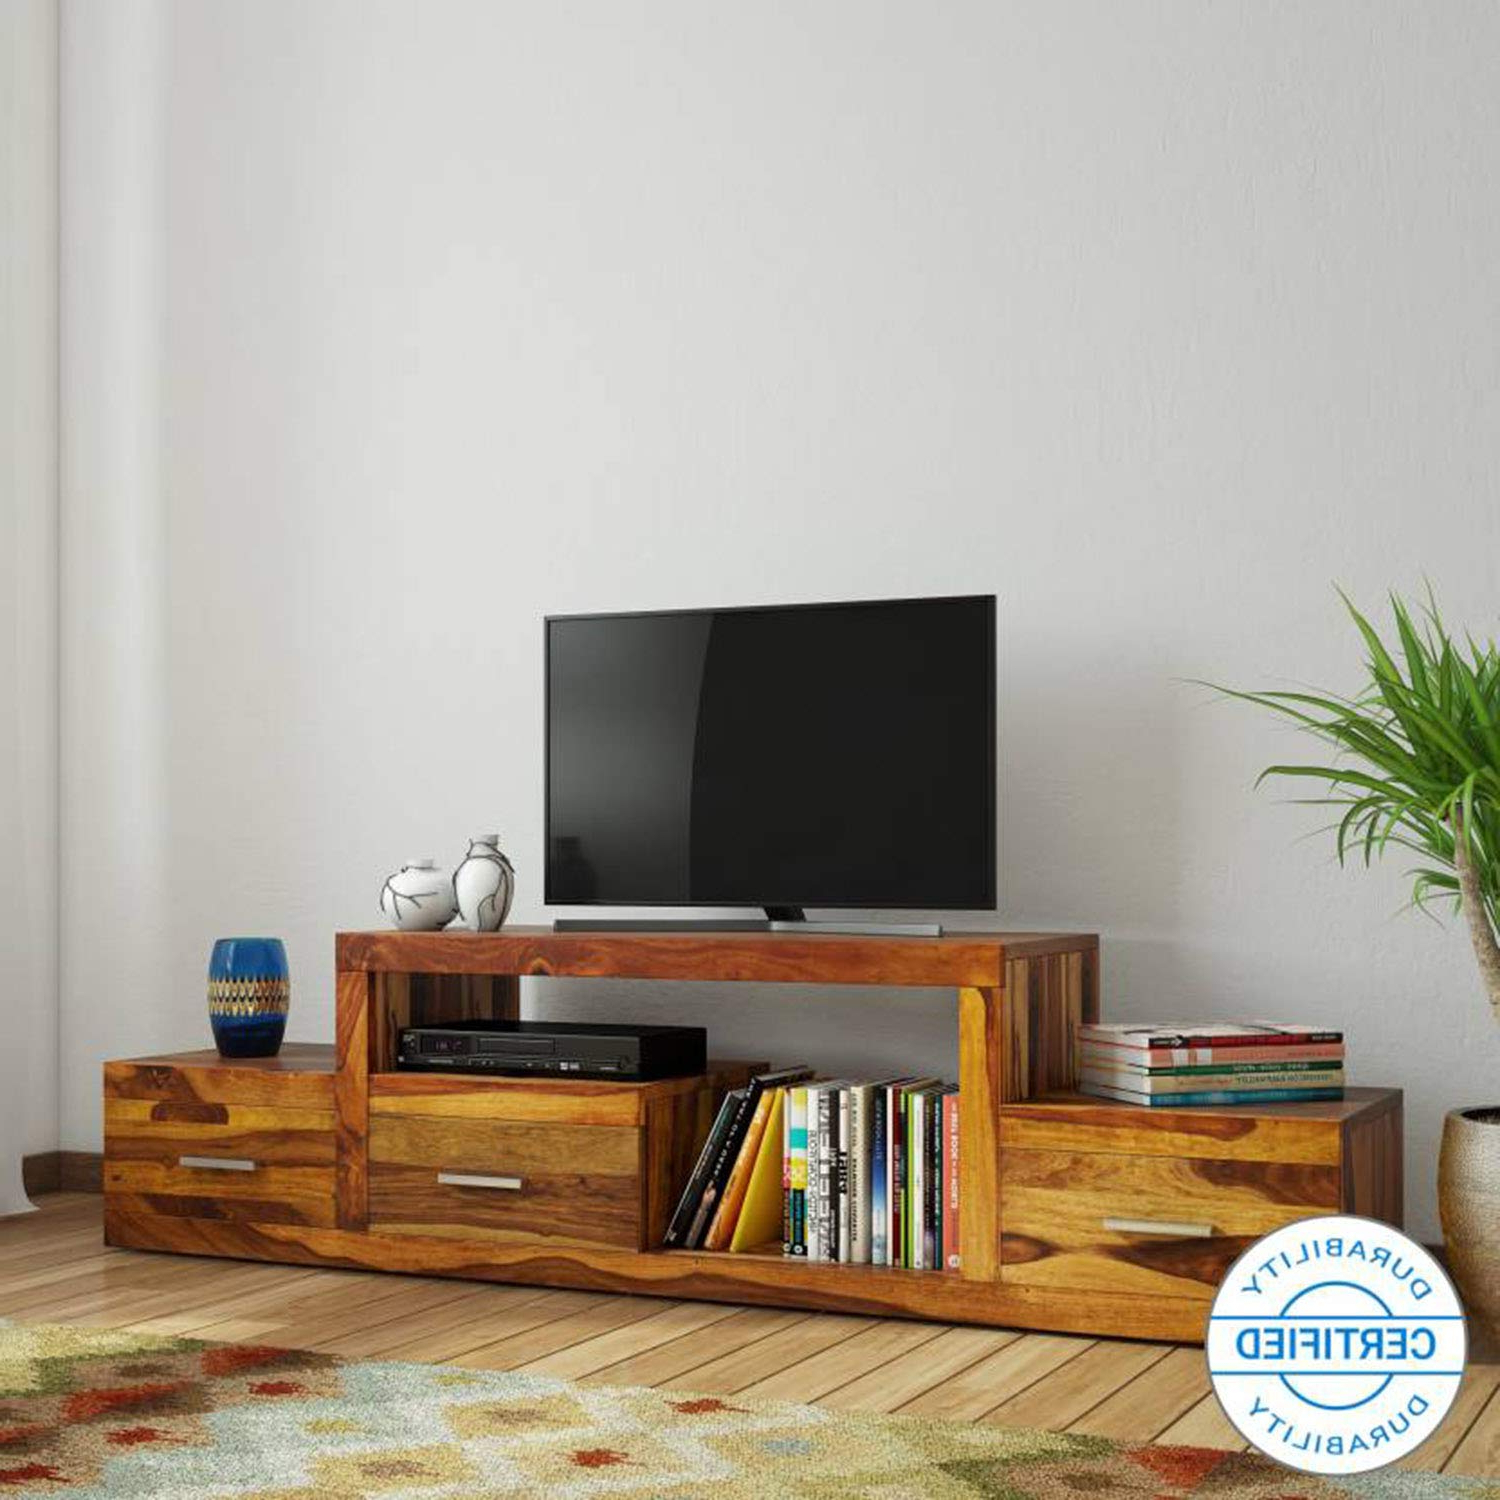 Latest Daintree Sheesham Wood 1.75 Meter Natural Teak Finish 3 Draw Nadia Within Daintree Tv Stands (Gallery 17 of 20)